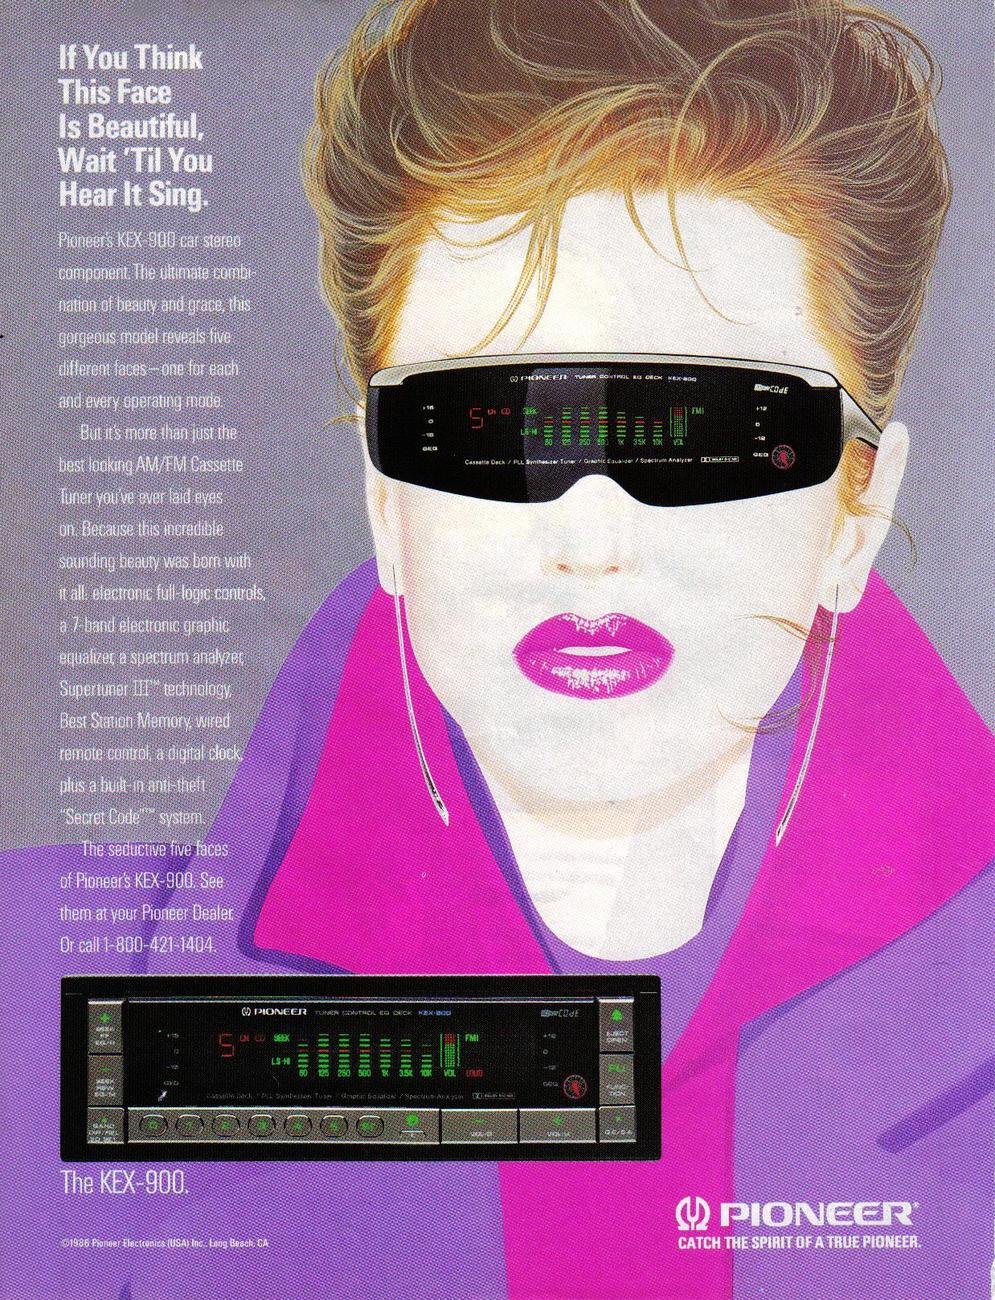 Pioneer 1988 Print Ad If You Think This Face is Beautiful, Wait 'Til You Hear It